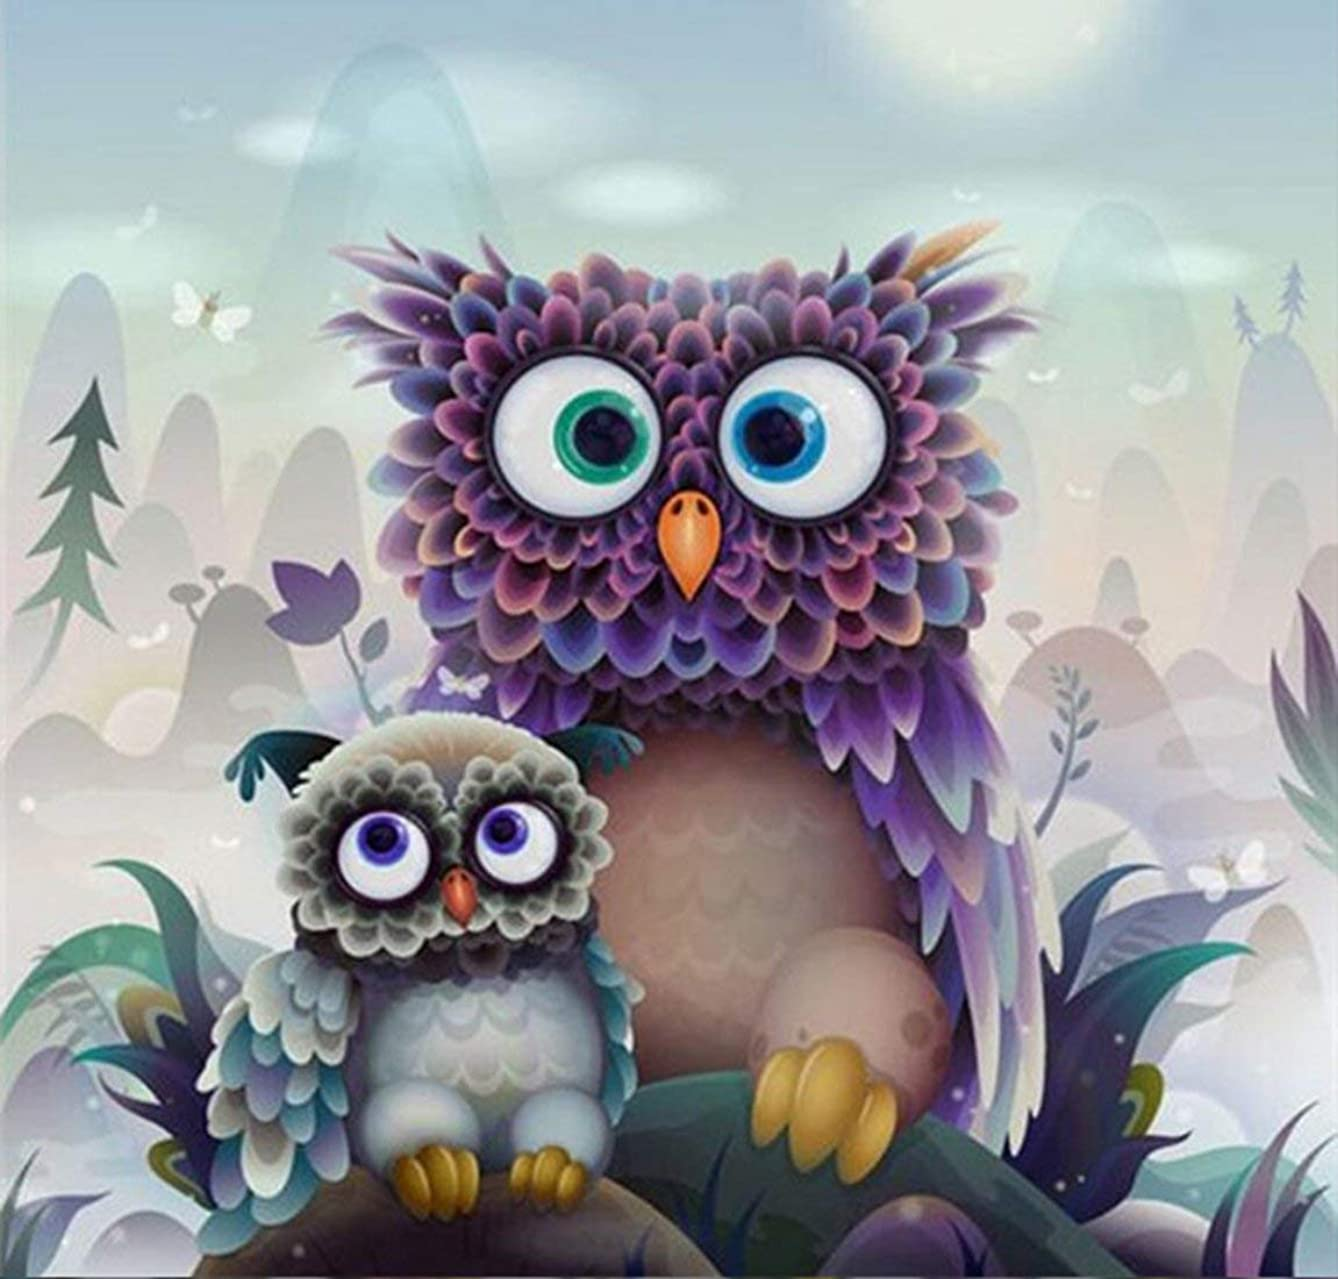 RICUVED 5D Diamond Painting Kit Owl Family Full Drill DIY Rhinestone Embroidery Cross Stitch Arts Craft for Home Wall Decor 12 x 12inch o176281730918155